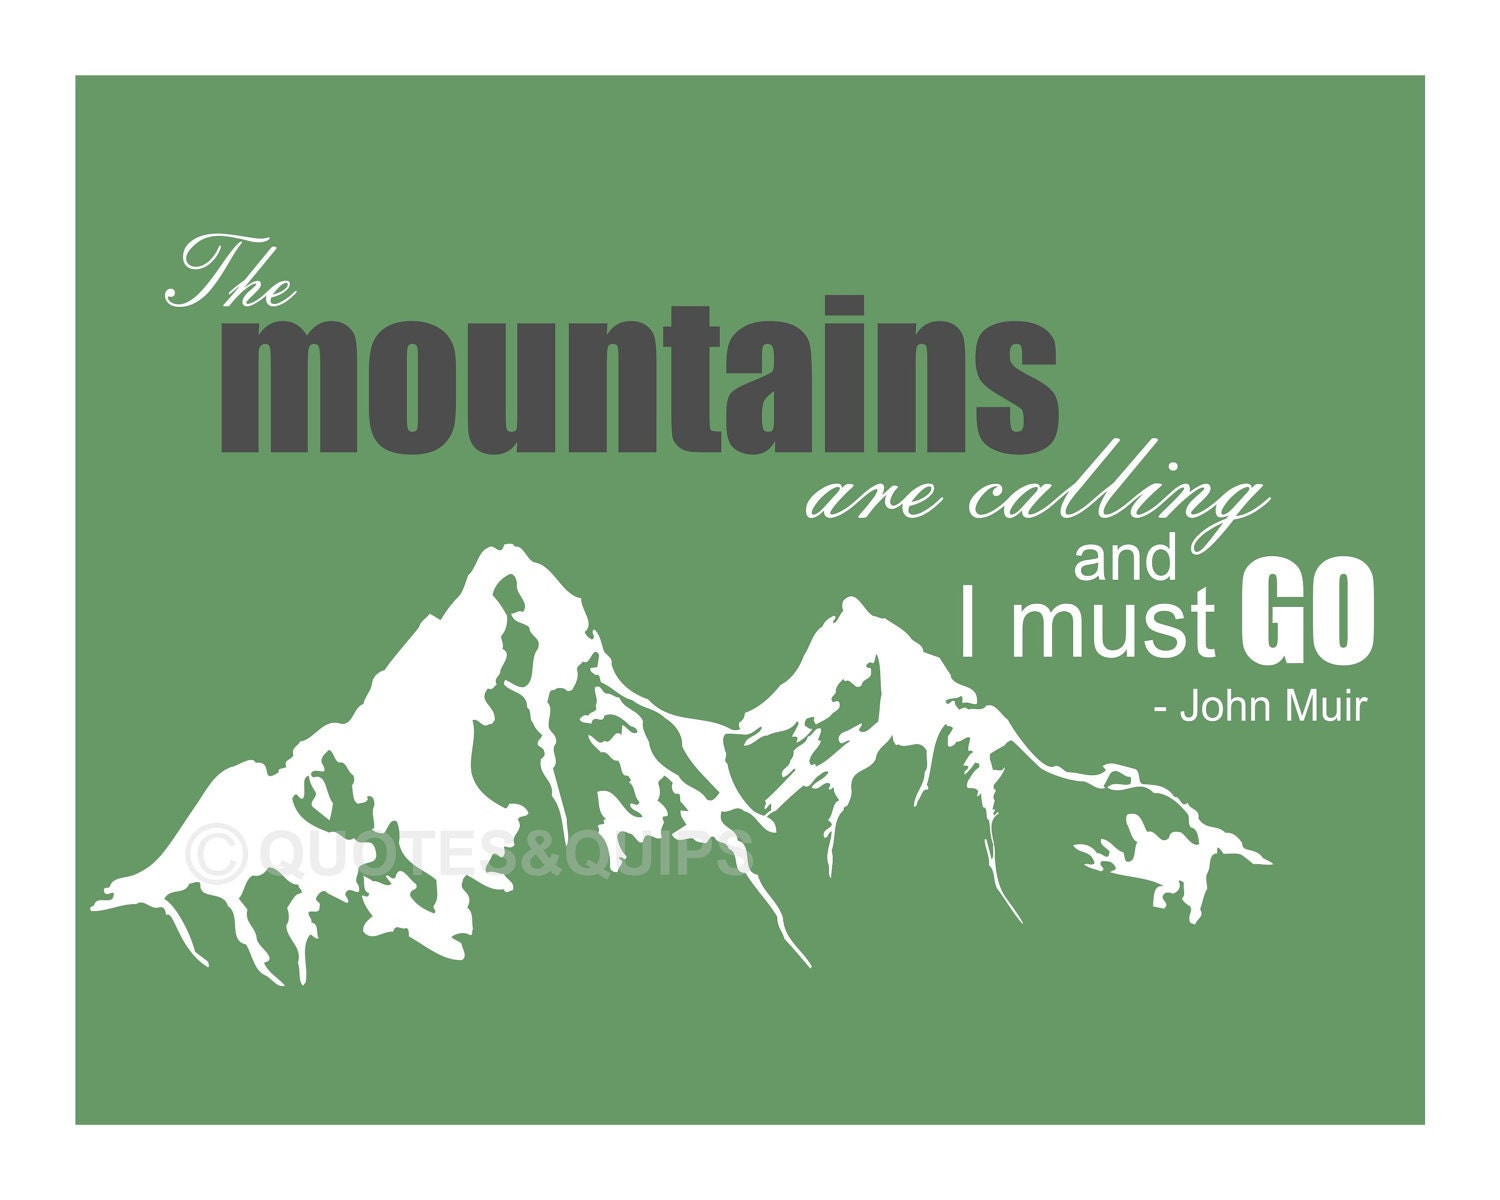 Design poster urging mountaineers preserve pristine glory mountainsides - Hope This Also Helps